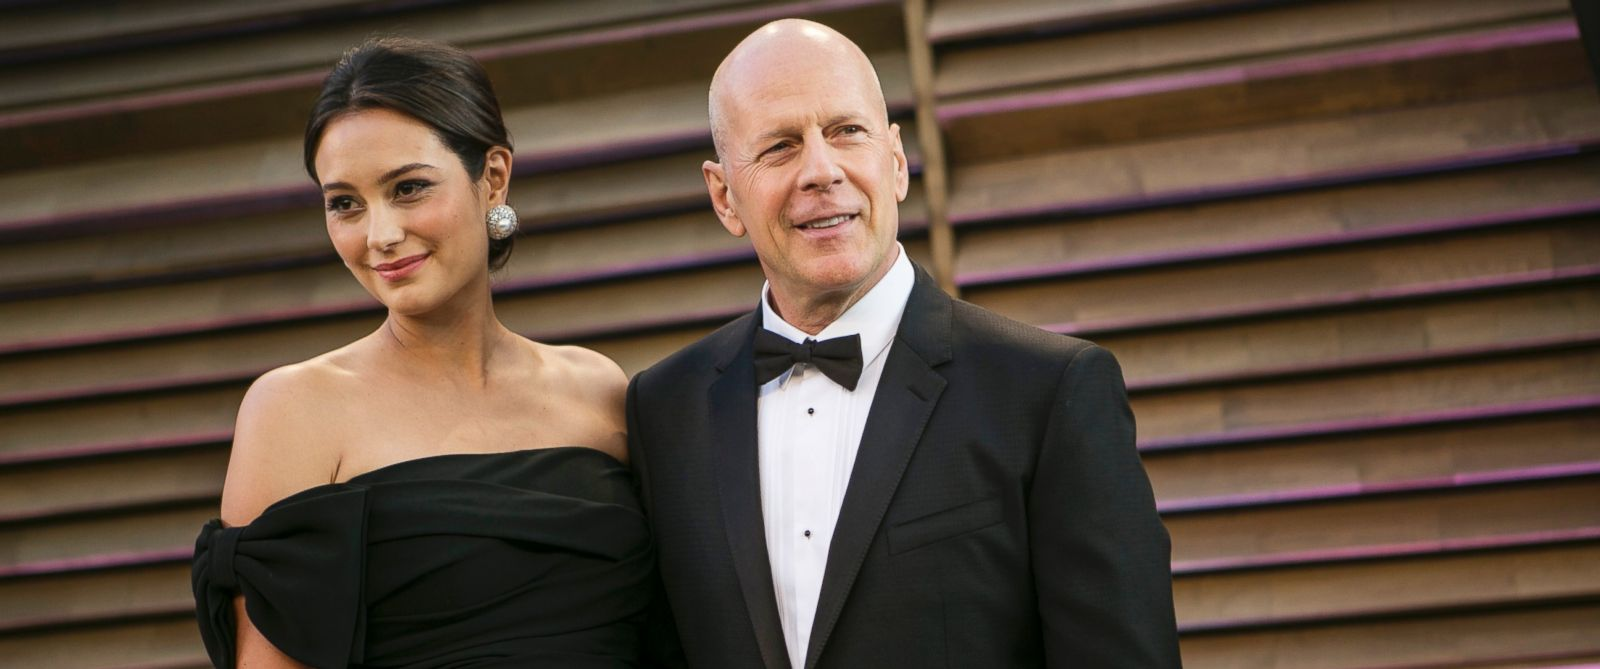 PHOTO: Bruce Willis and his wife Emma Heming arrive at the 2014 Vanity Fair Oscar Party on March 2, 2014 in West Hollywood, California.